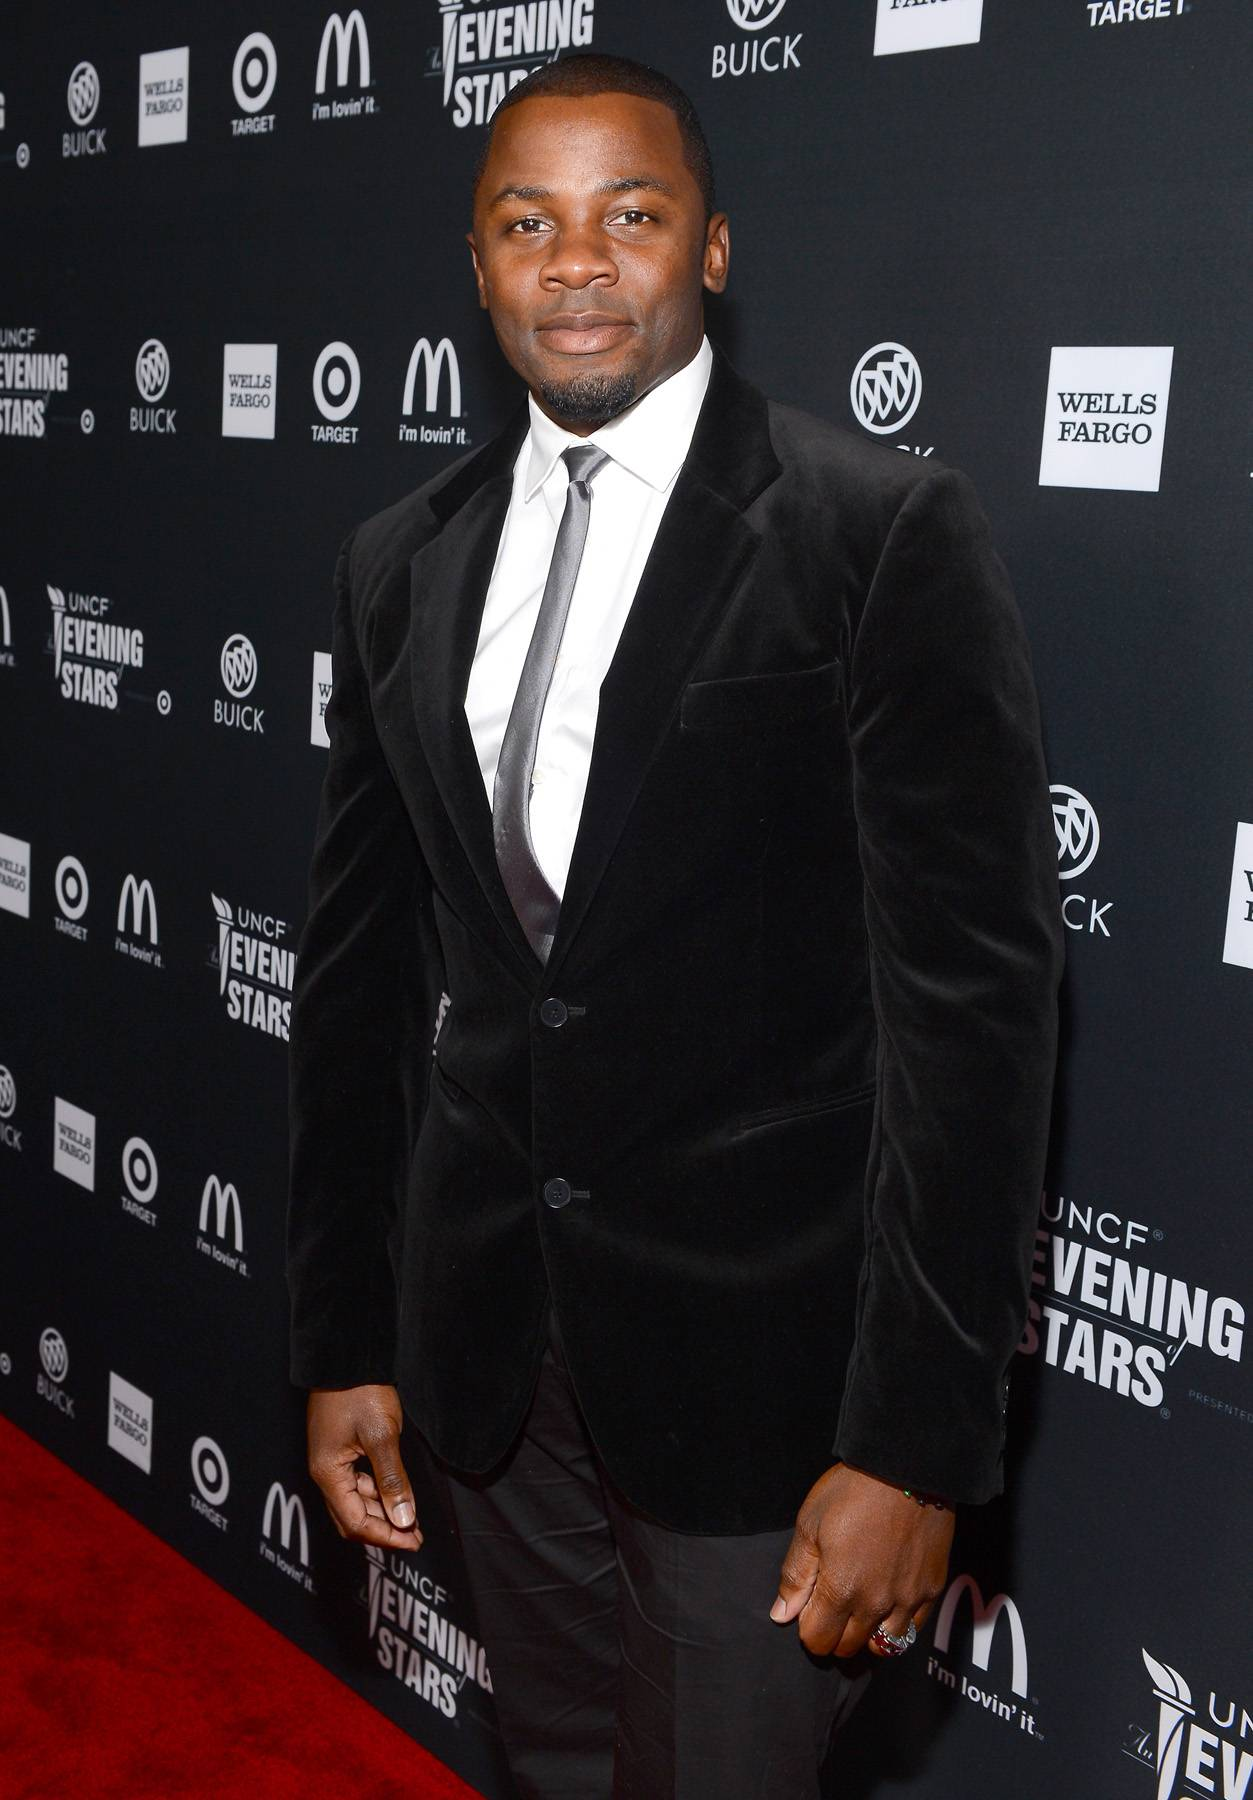 Take That, Take That! - Versatile actor Derek Luke walked the red carpet in a black suit highlighted by his skinny silver tie.  (Photo: Mark Davis/Getty Images for BET)